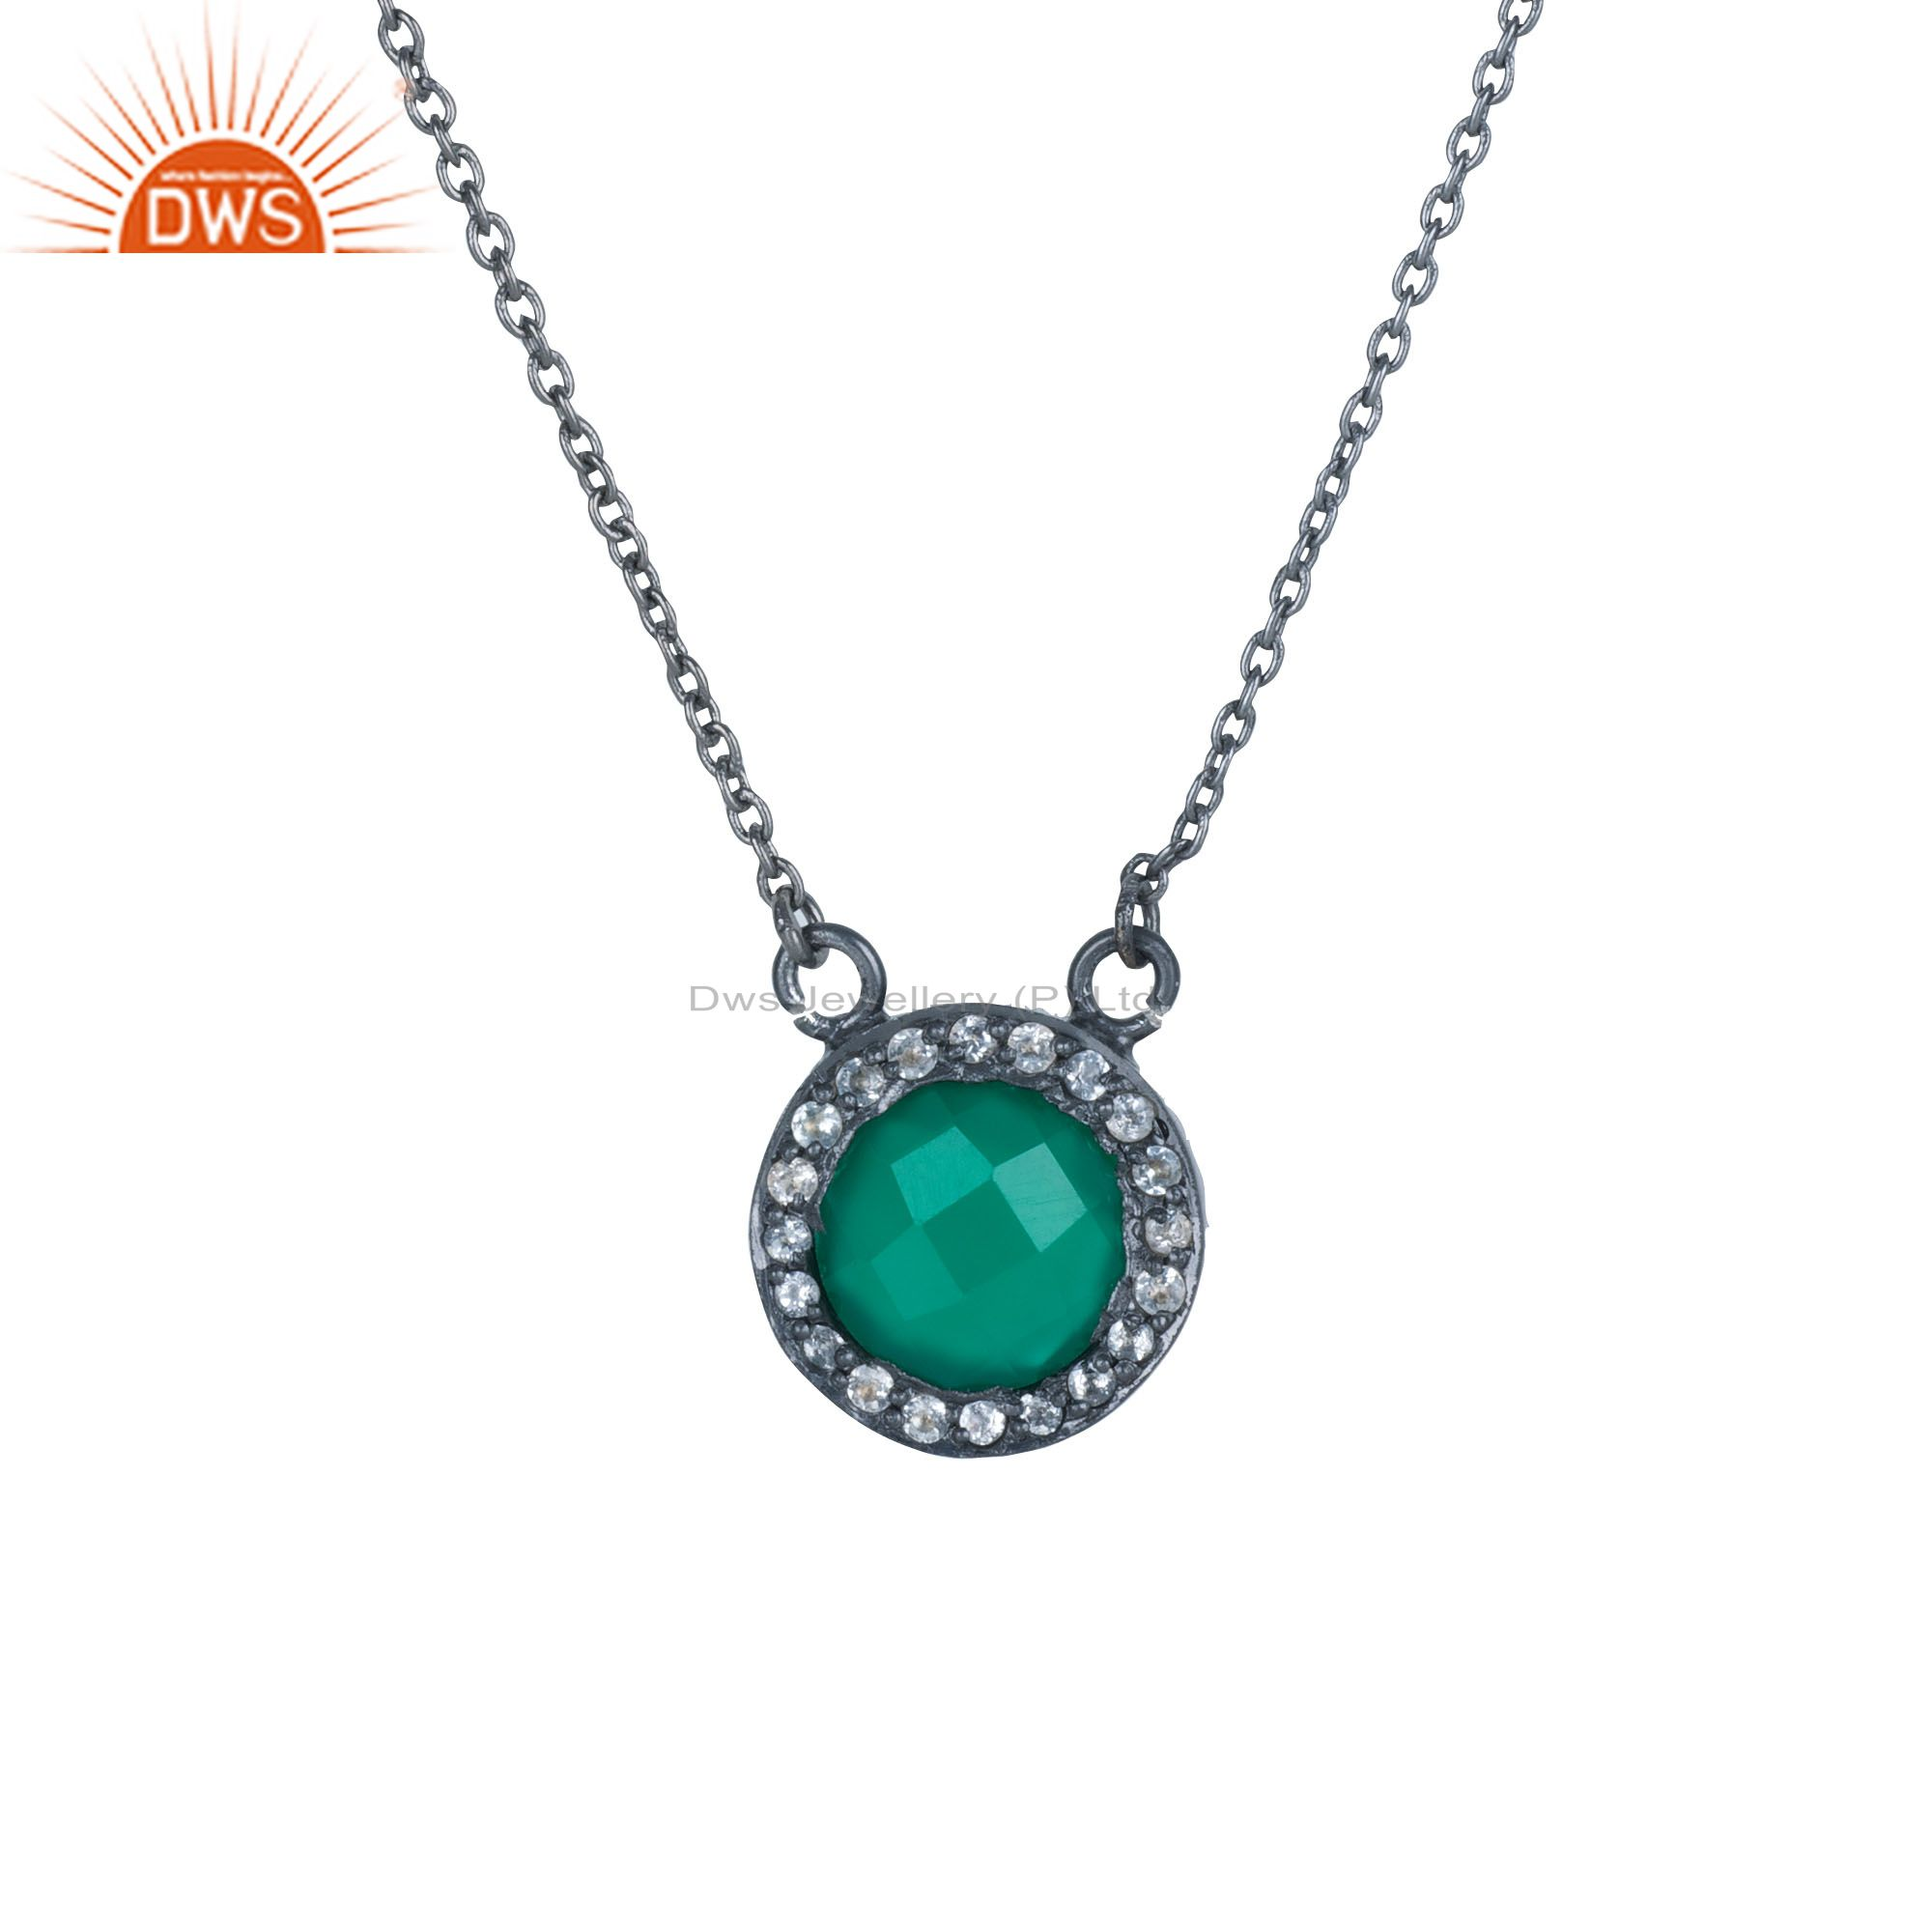 925 Sterling Silver Oxidized Green Onyx And White Topaz Pendant Chain Necklace